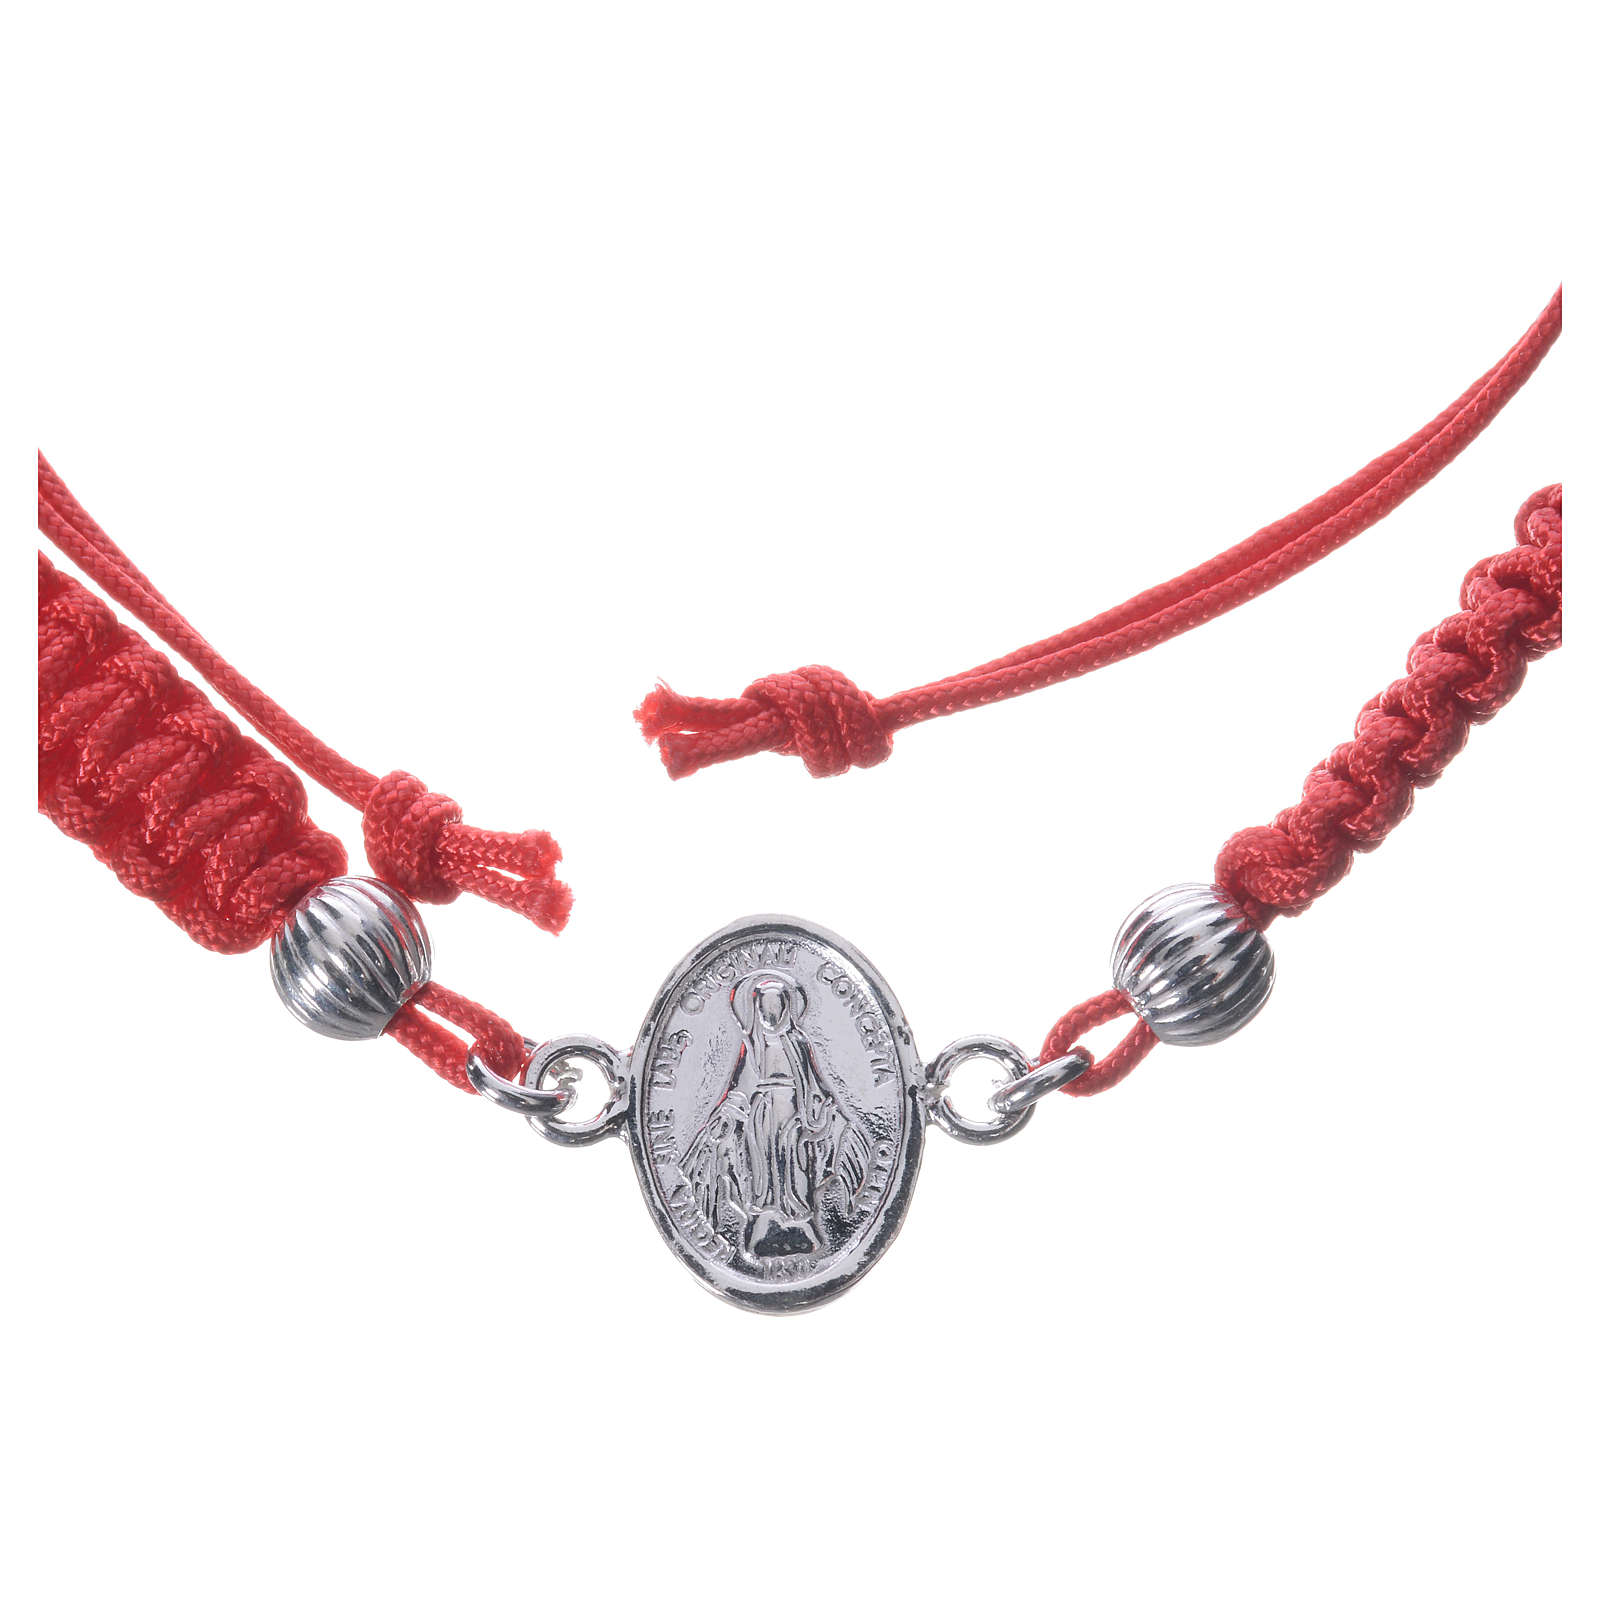 Bracelet with Miraculous Medal in 800 silver and red cord 4